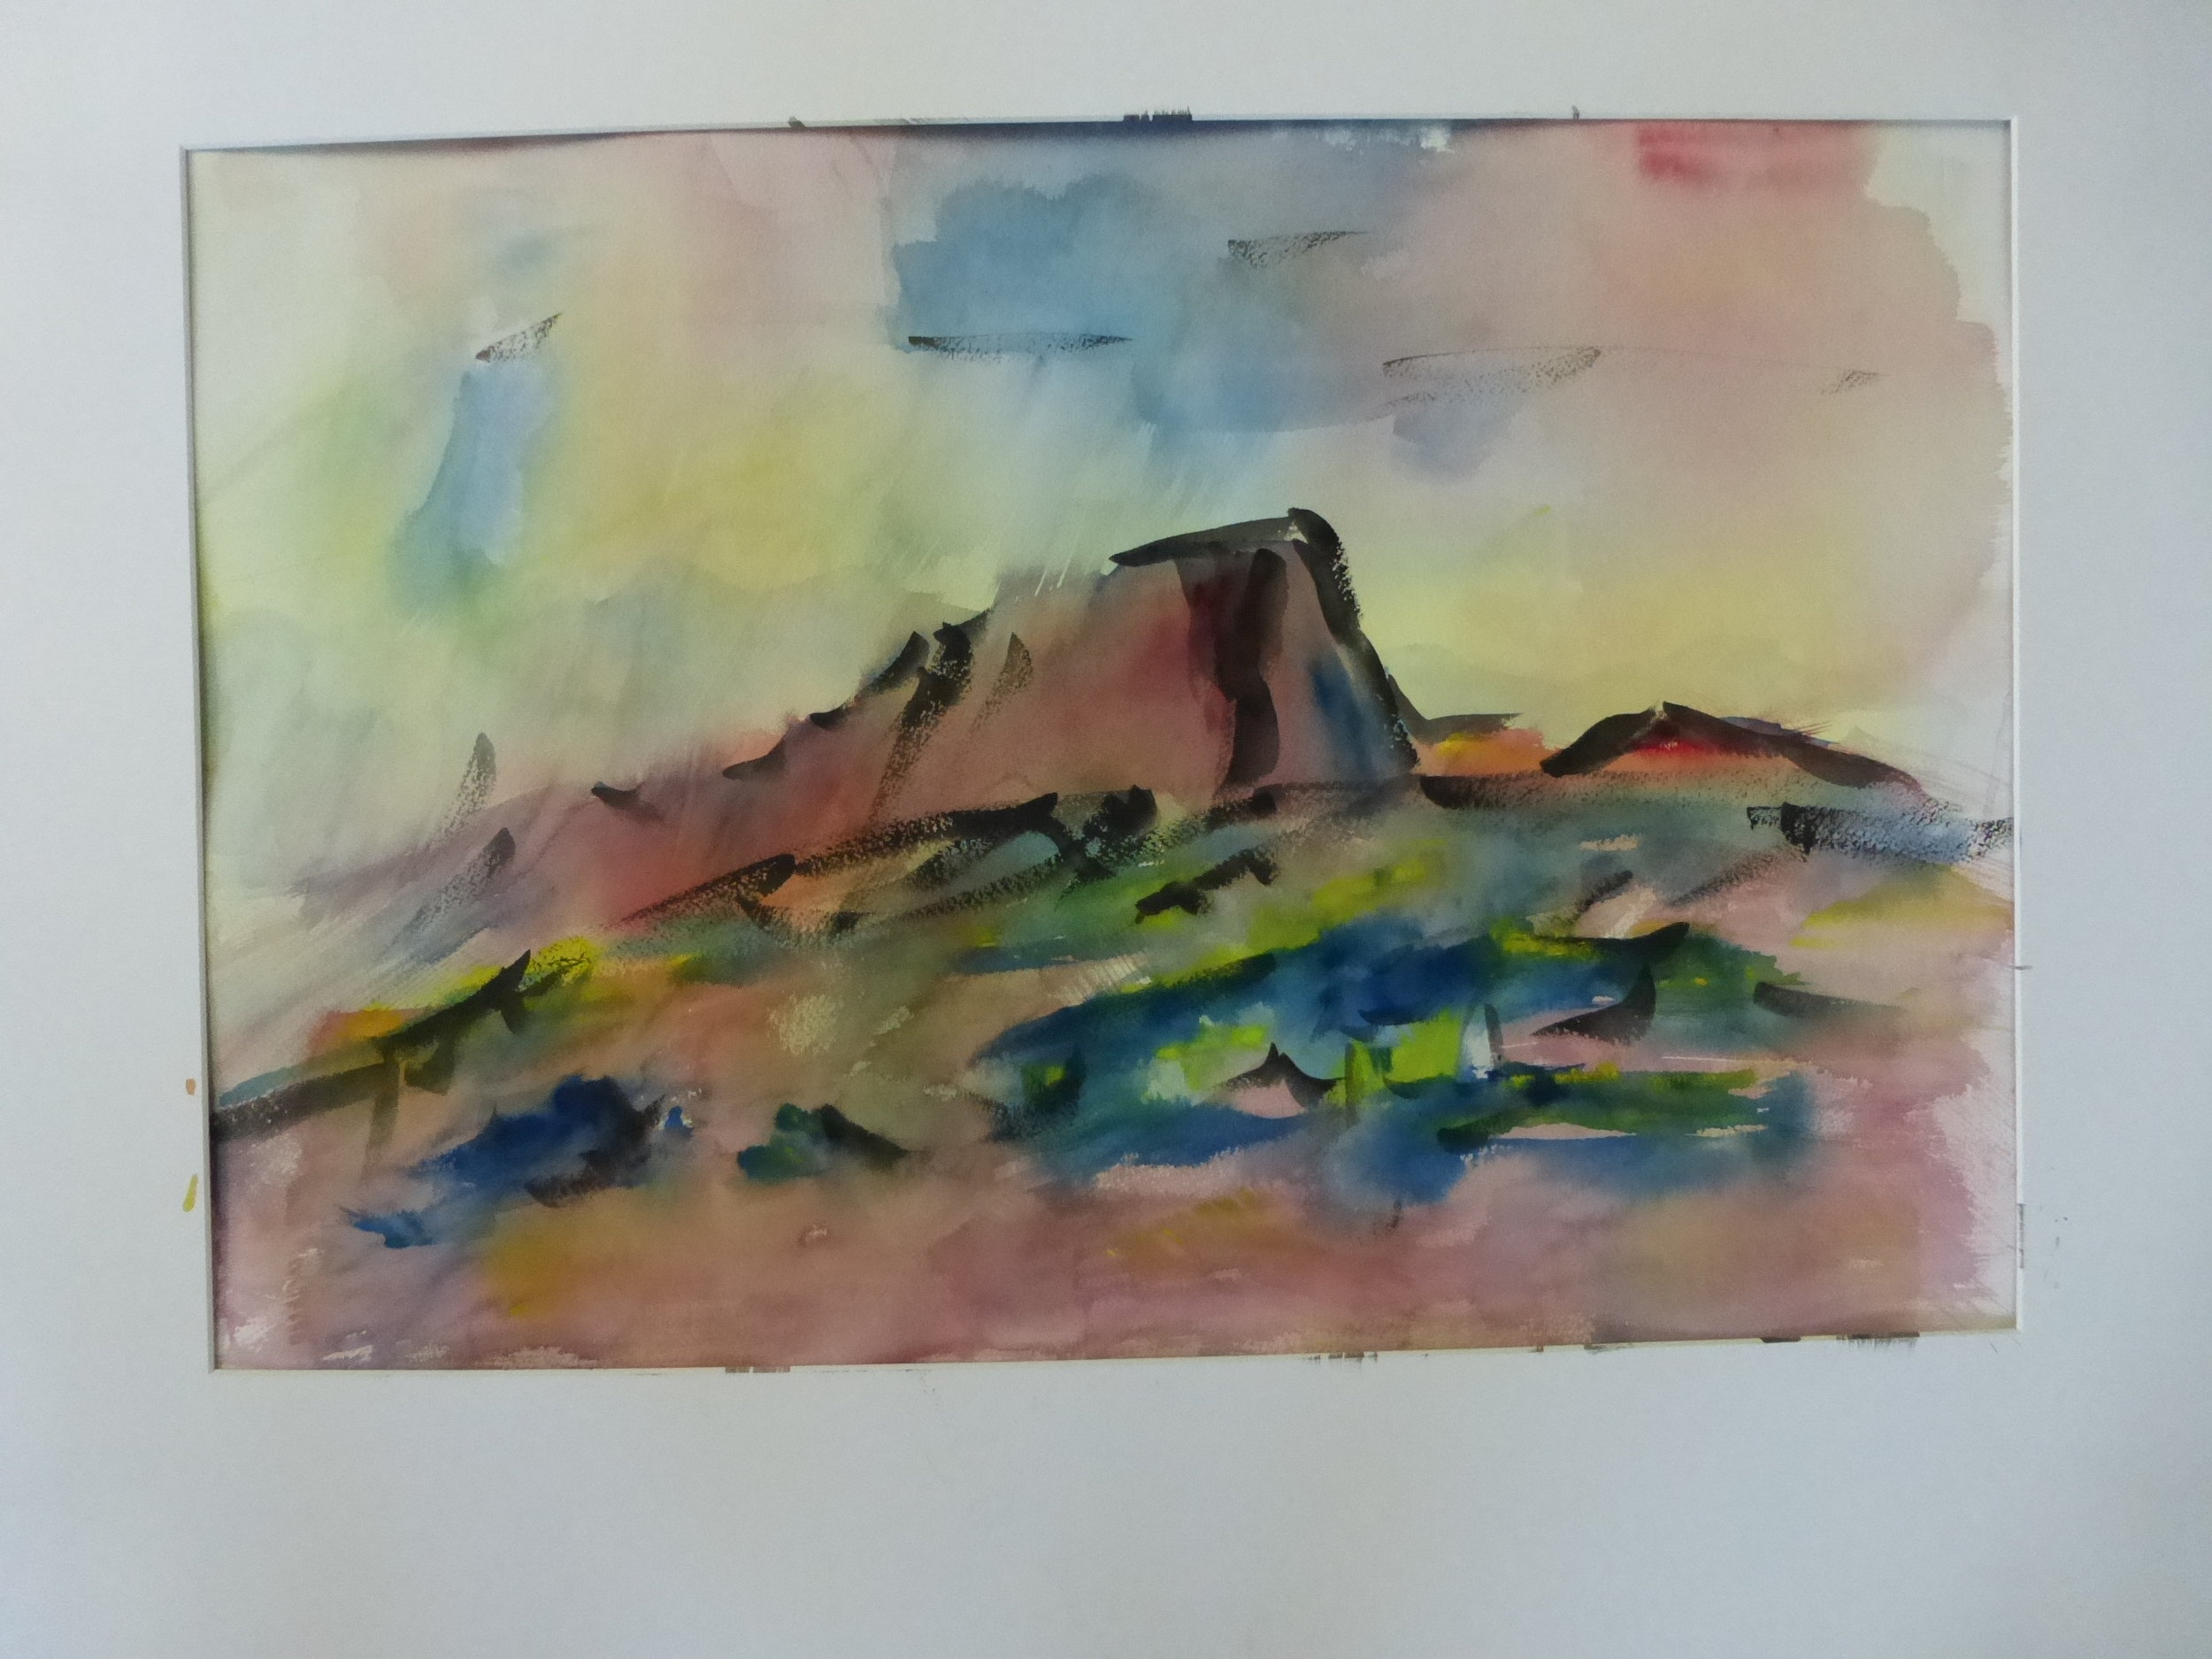 An abstract that reminds me of Hermit's Peak, my favorite mountain in New Mexico